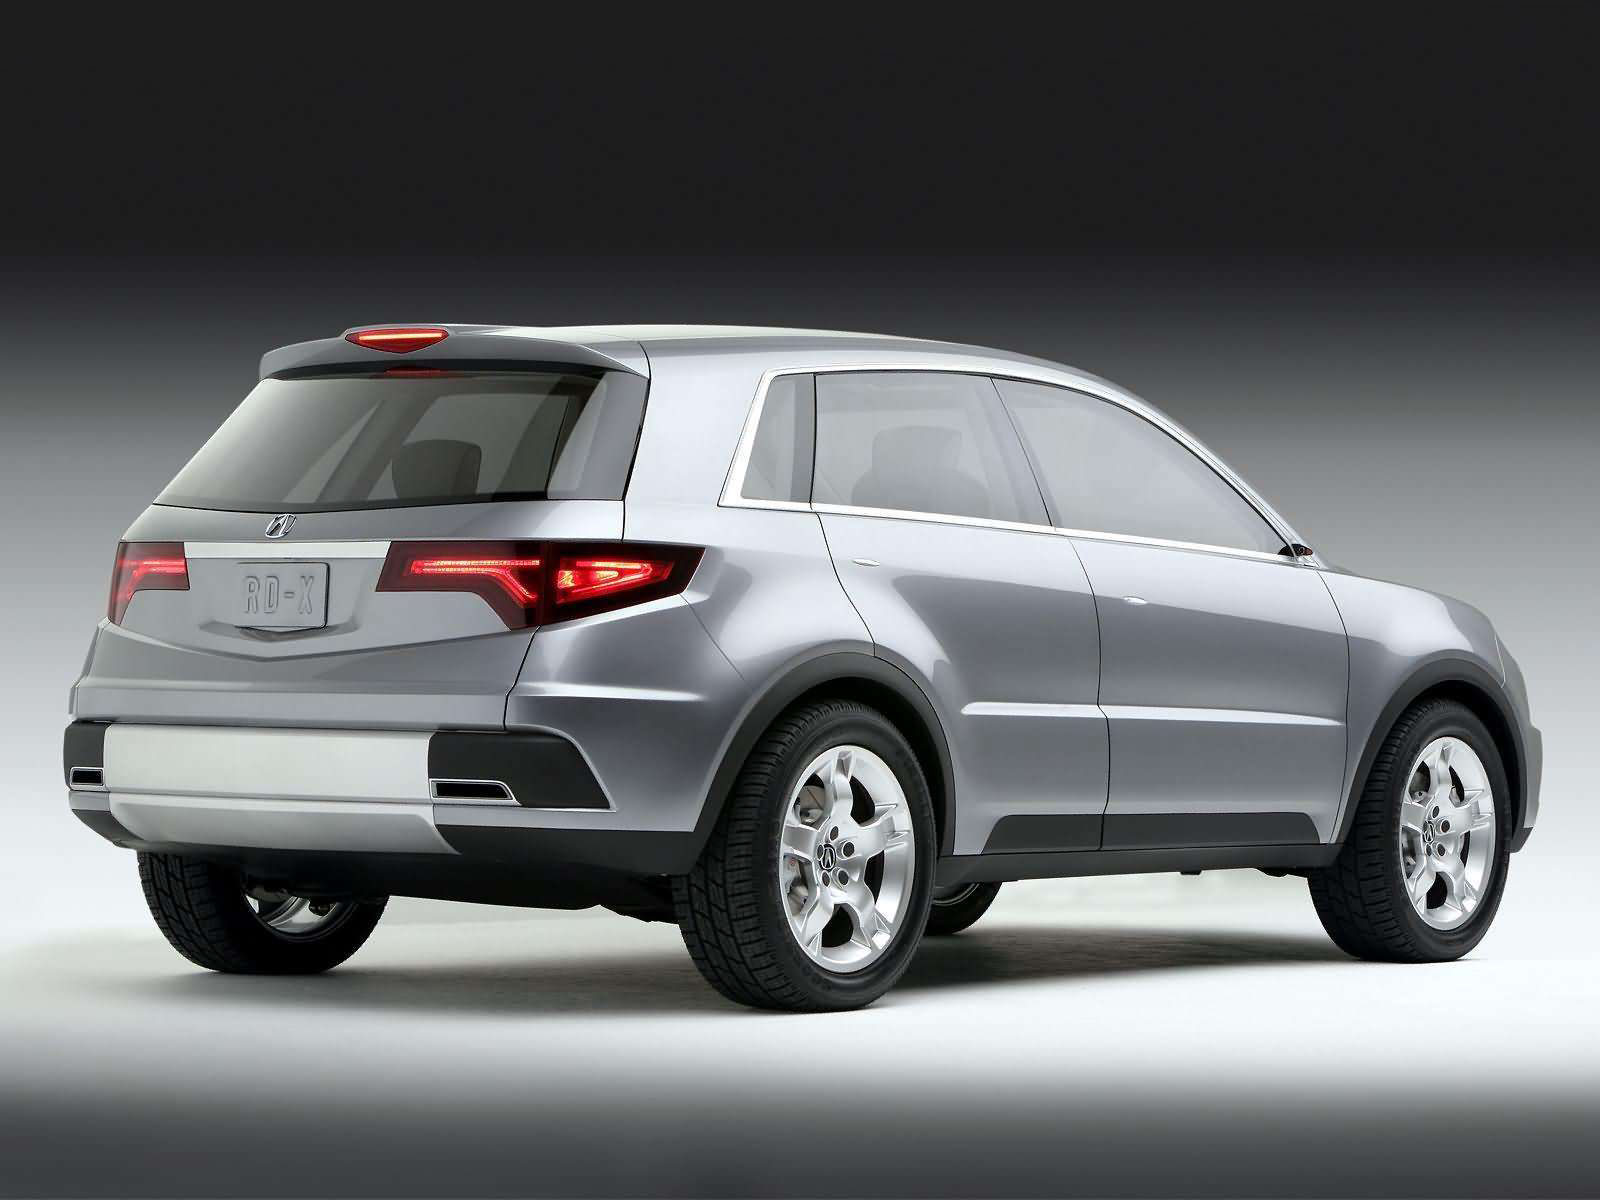 2005 Acura RDX Concept photo - 4